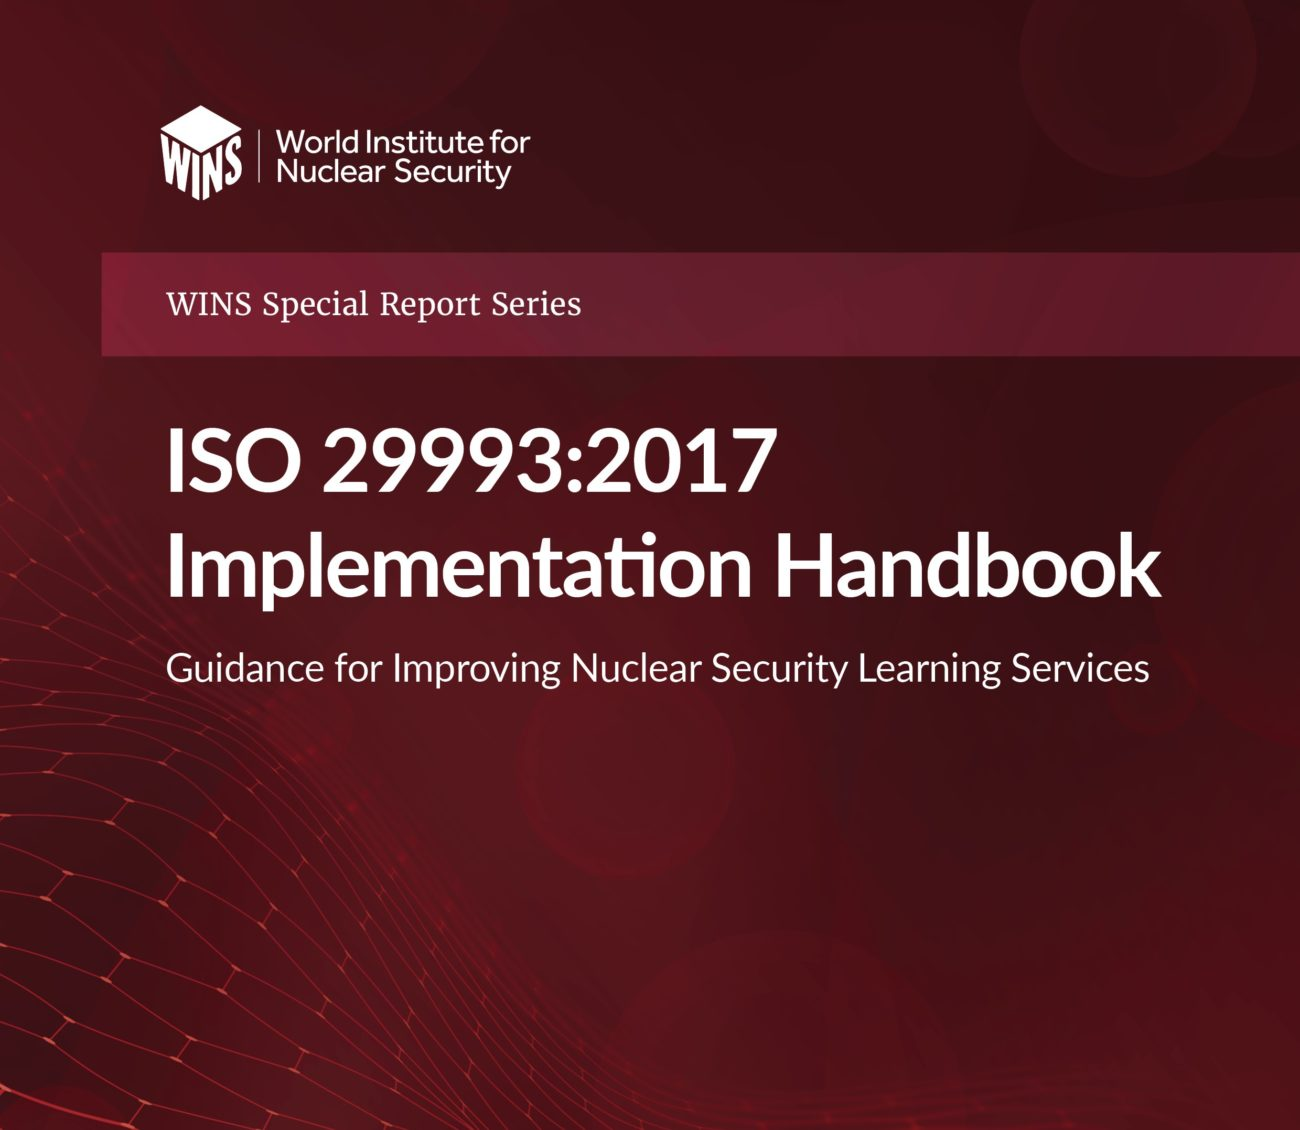 WINS publishes ISO 29993:2017 Implementation Handbook